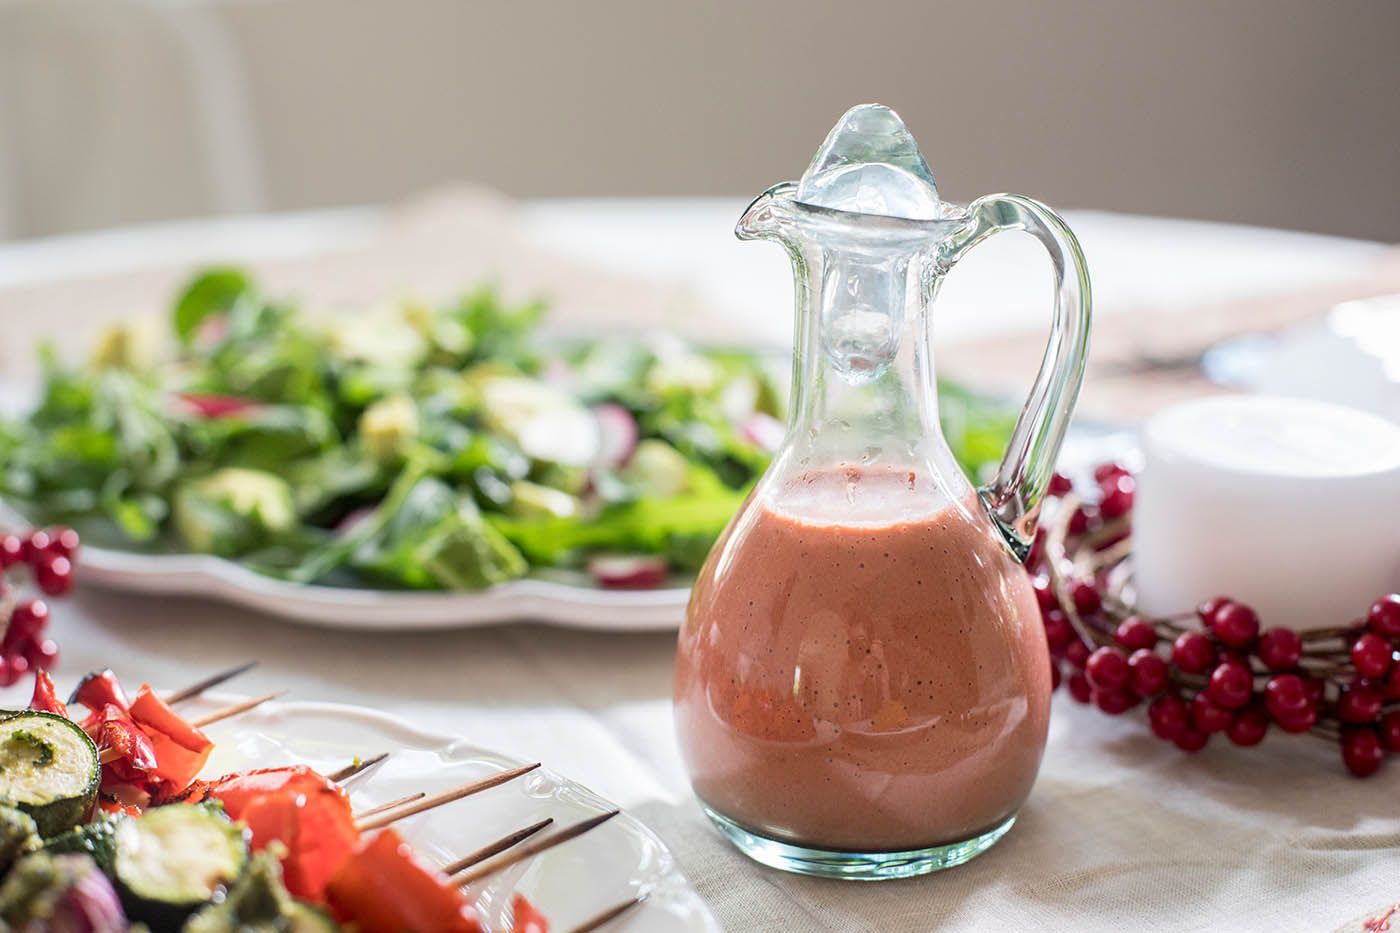 Strawberry and Balsamic Salad Dressing